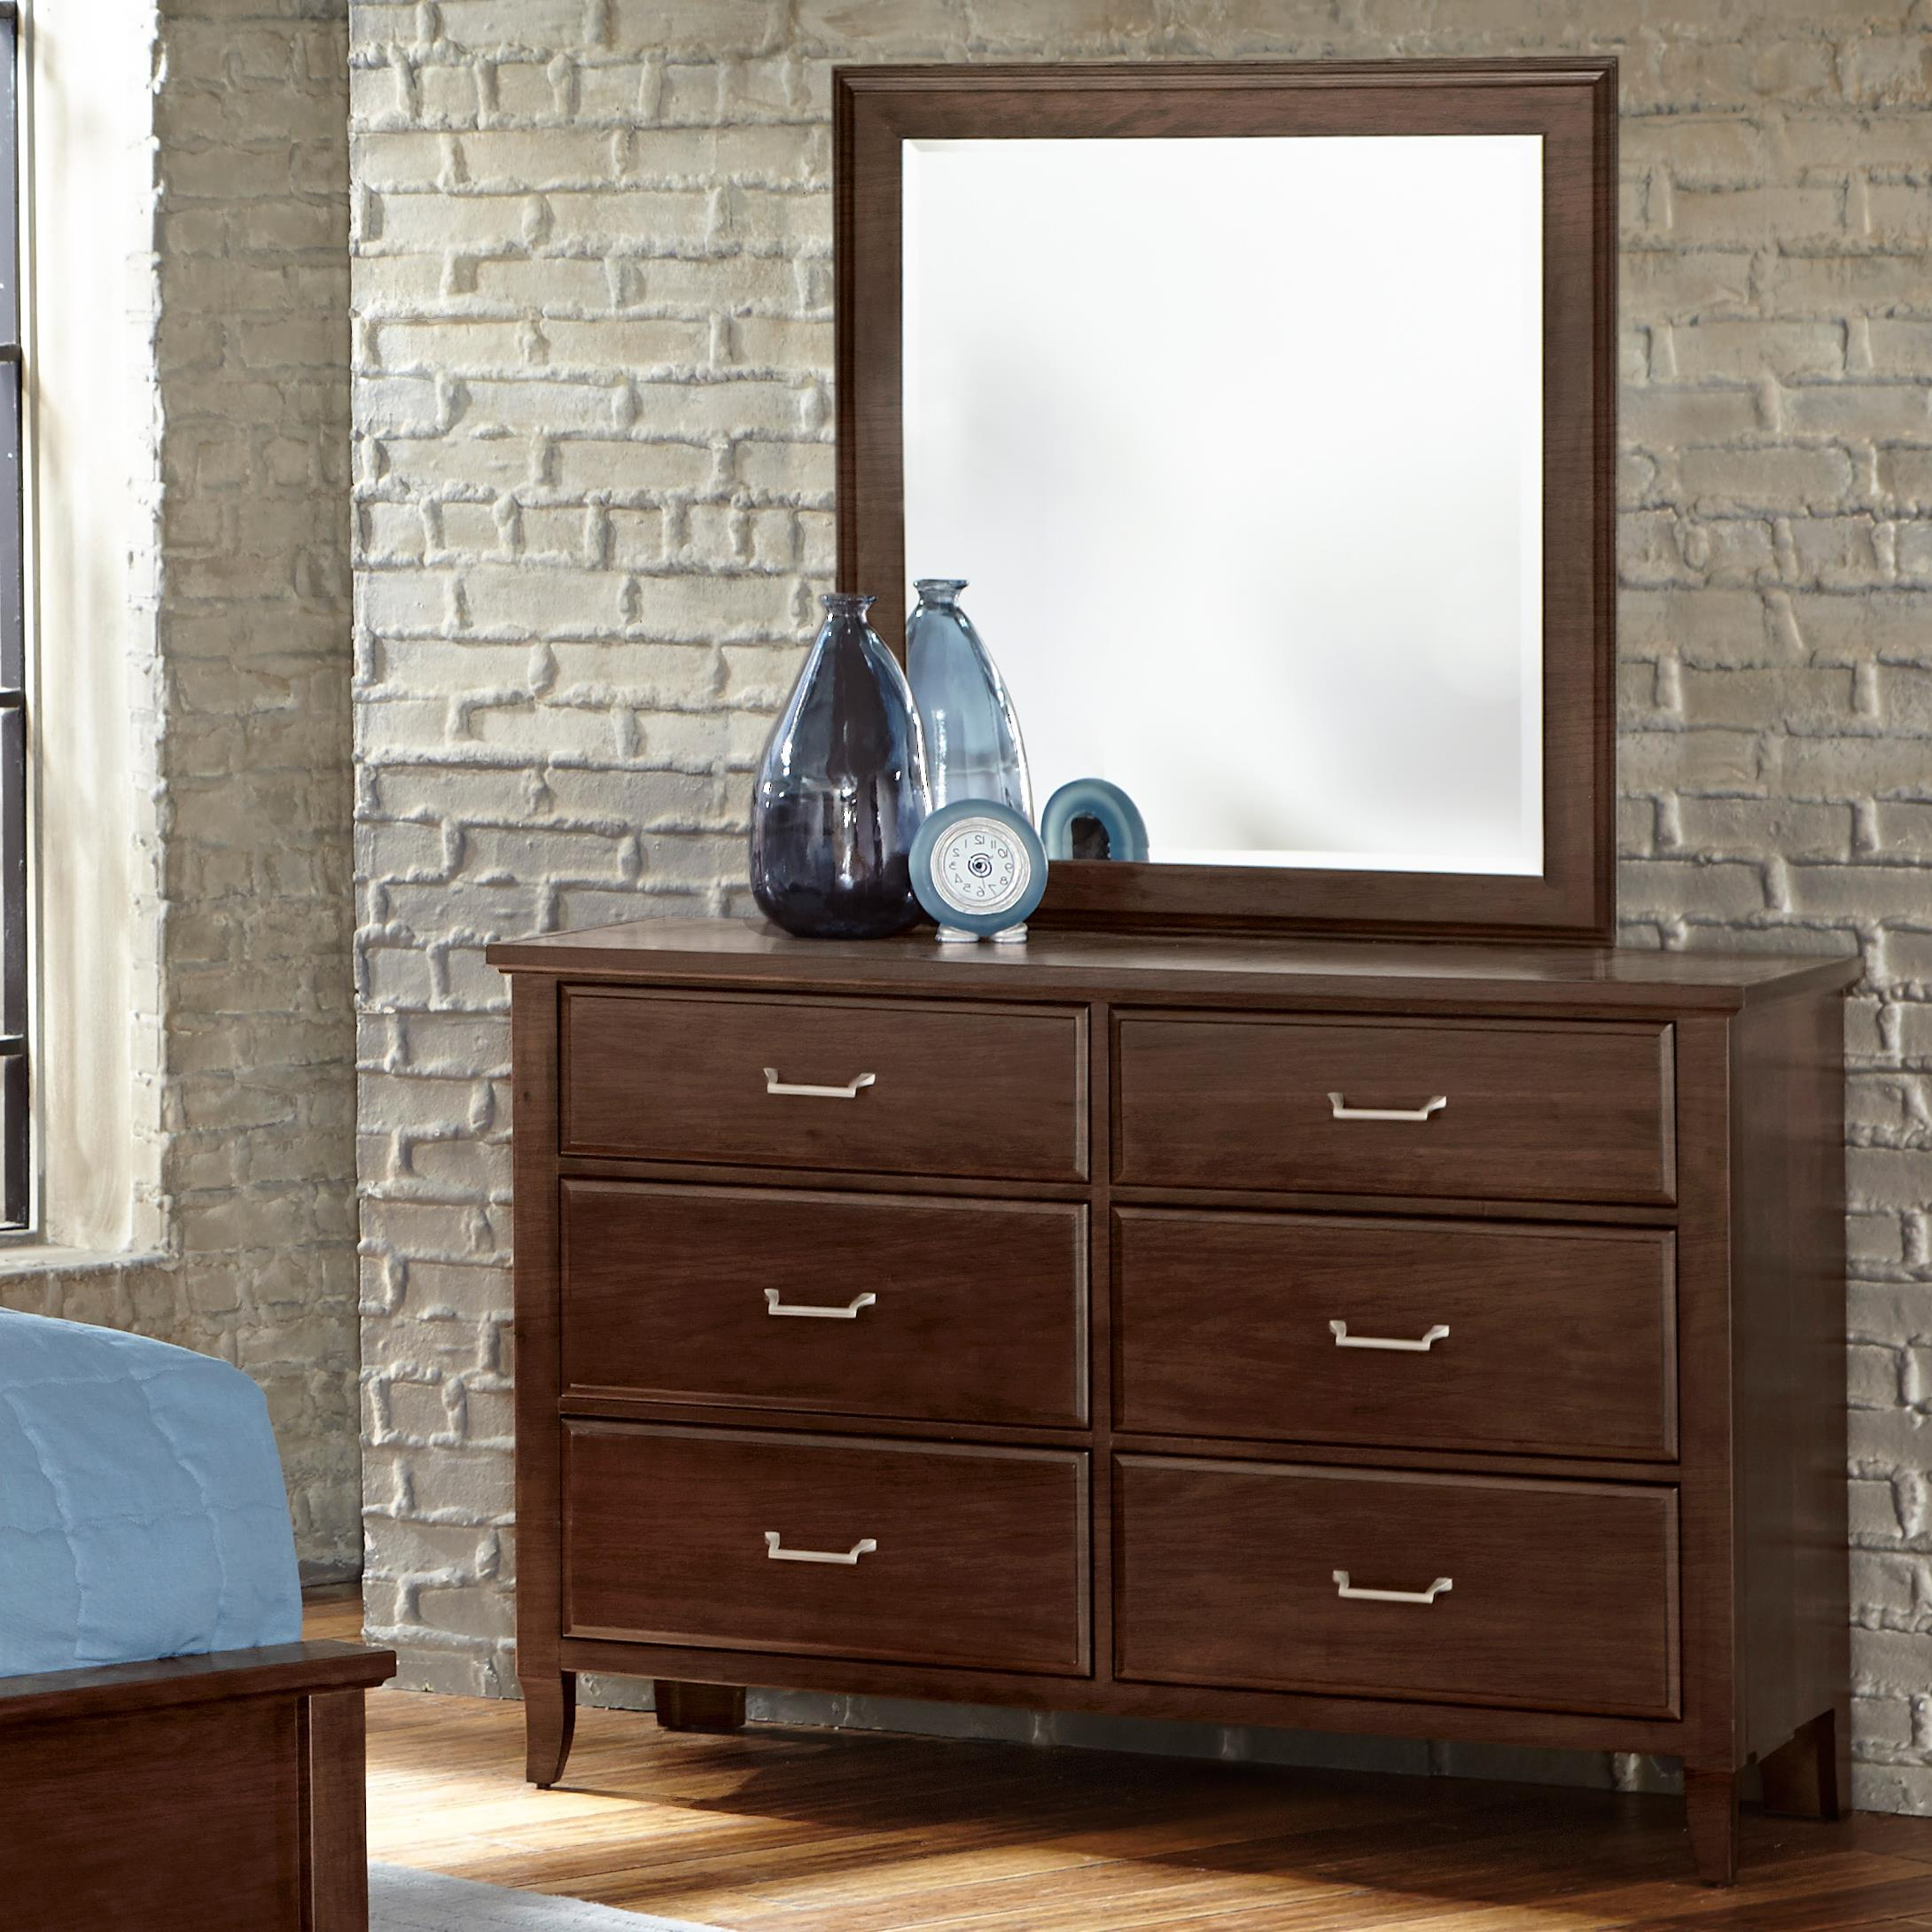 Vaughan Bassett Commentary Dresser - 6 drawers & Youth Landscape Mirror - Item Number: 392-001+442